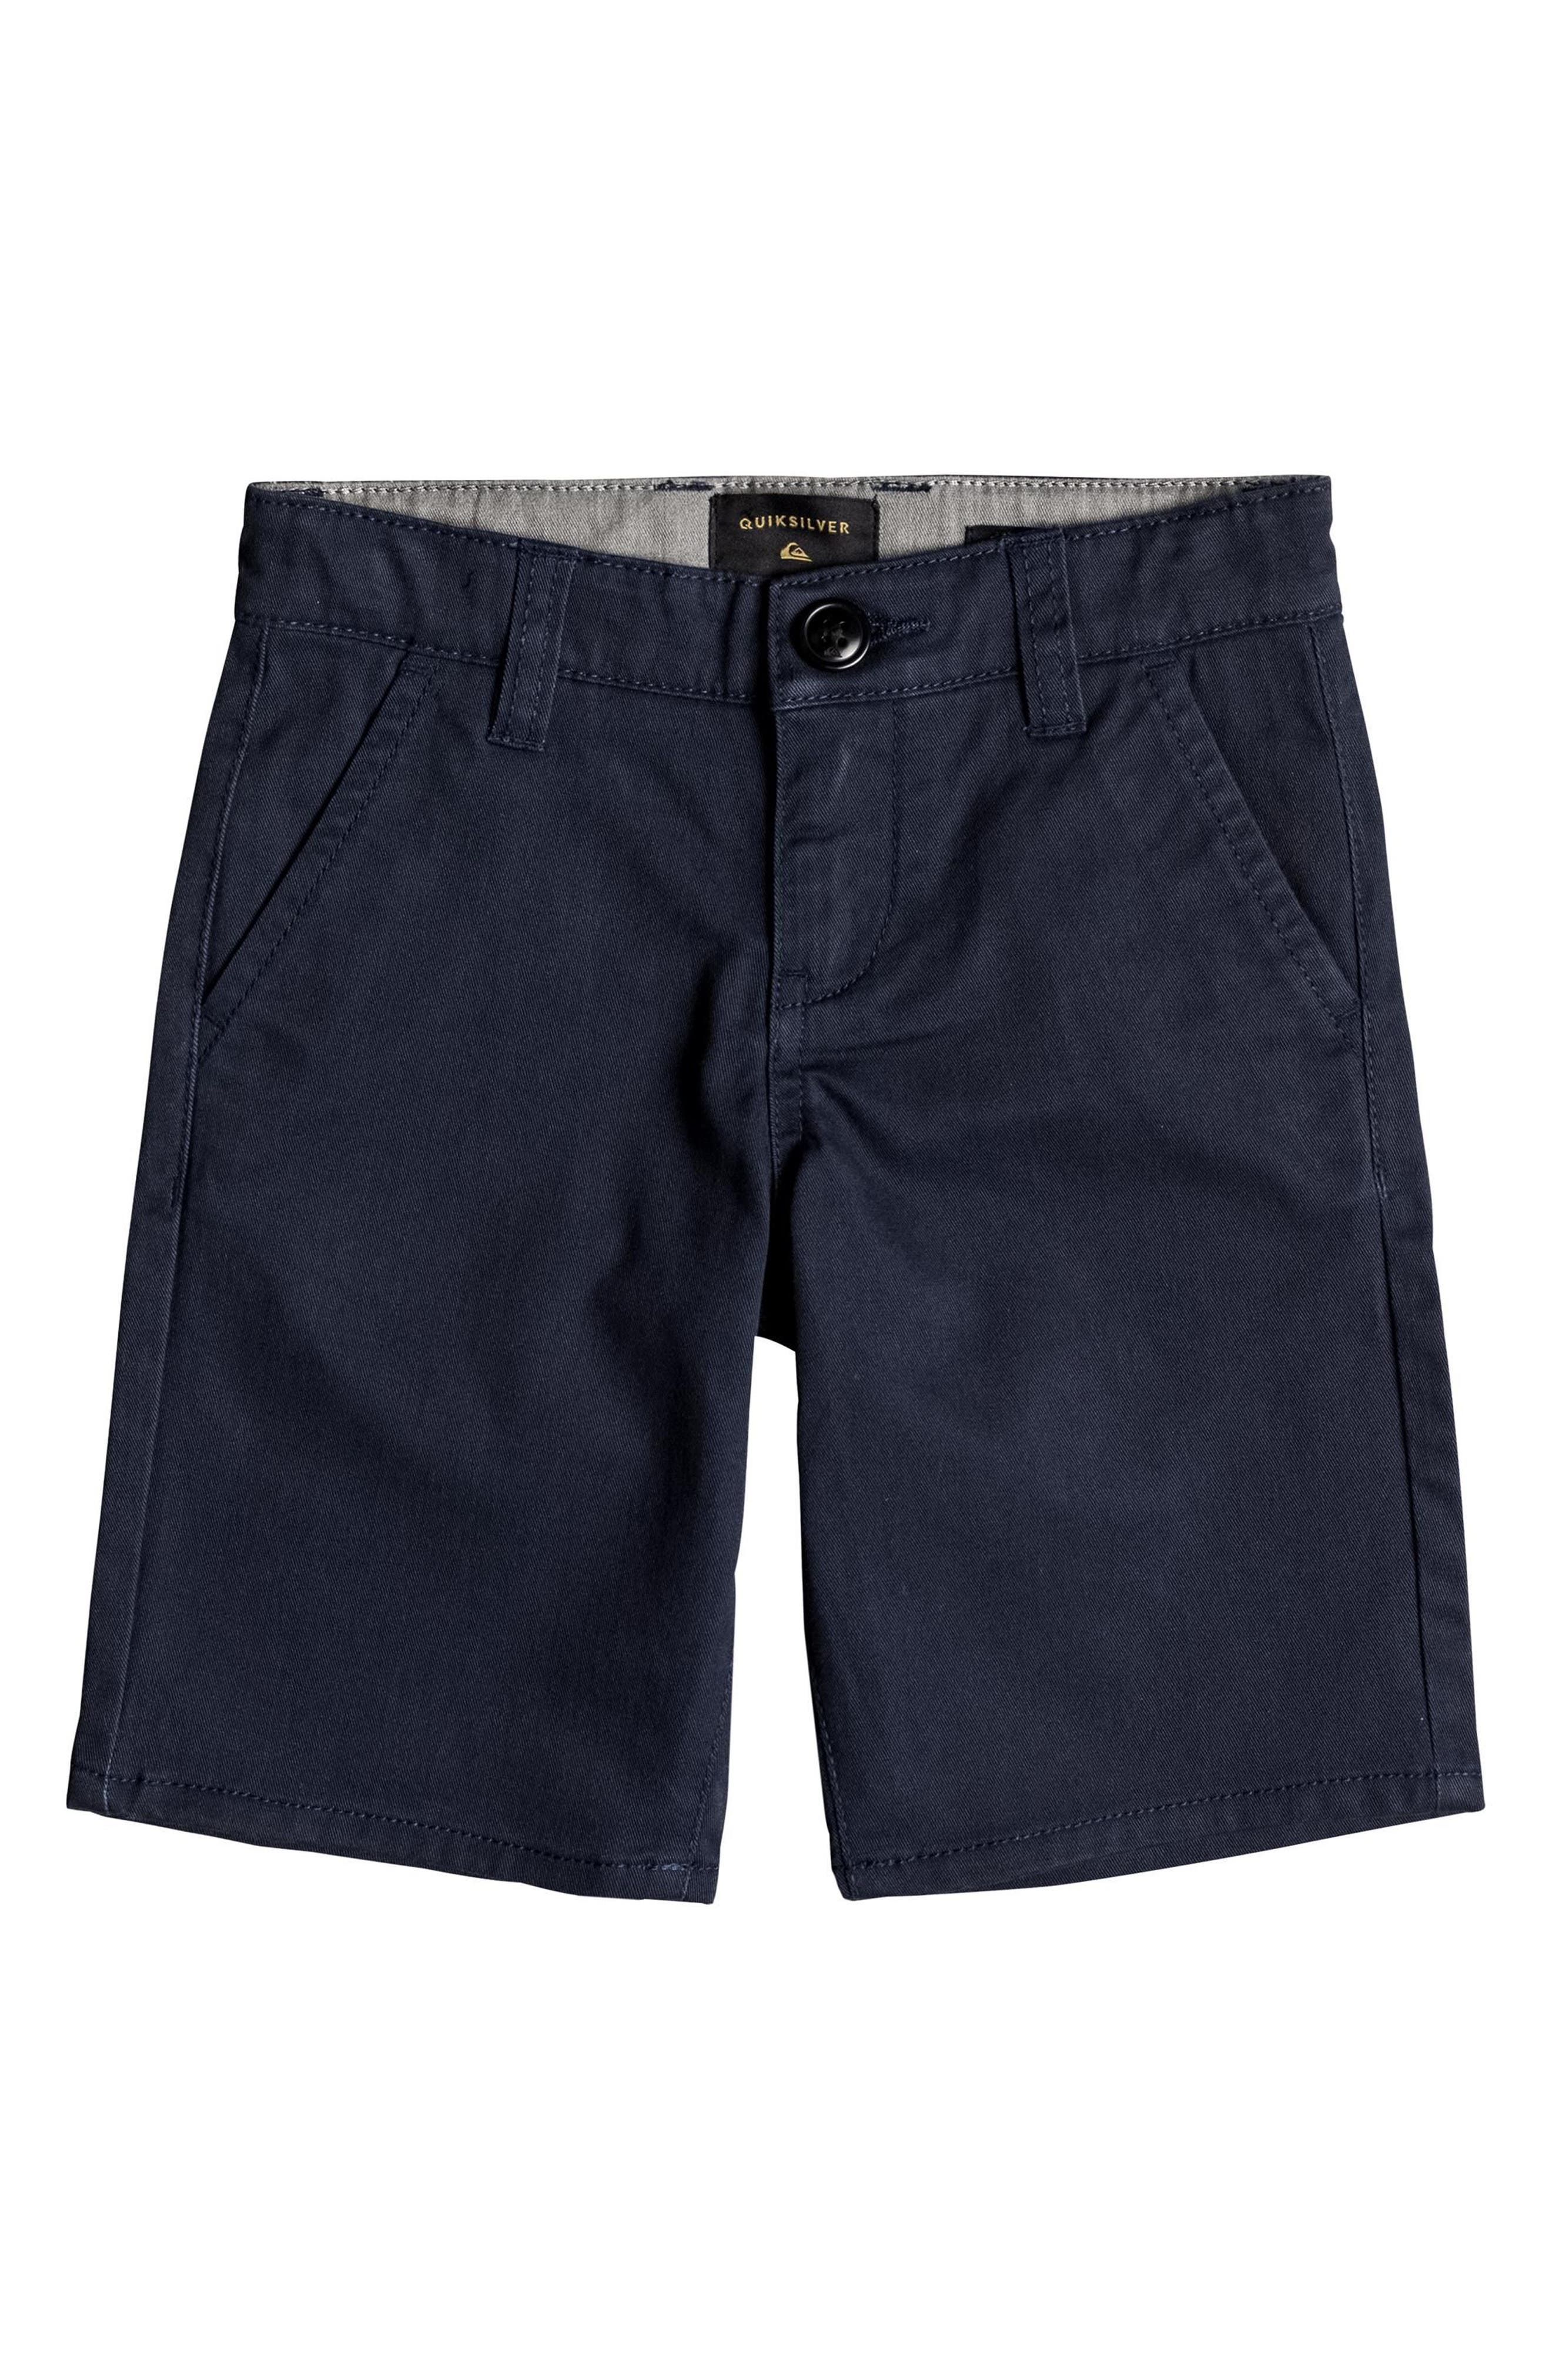 Quiksilver Everyday Union Stretch Shorts (Toddler Boys & Little Boys)